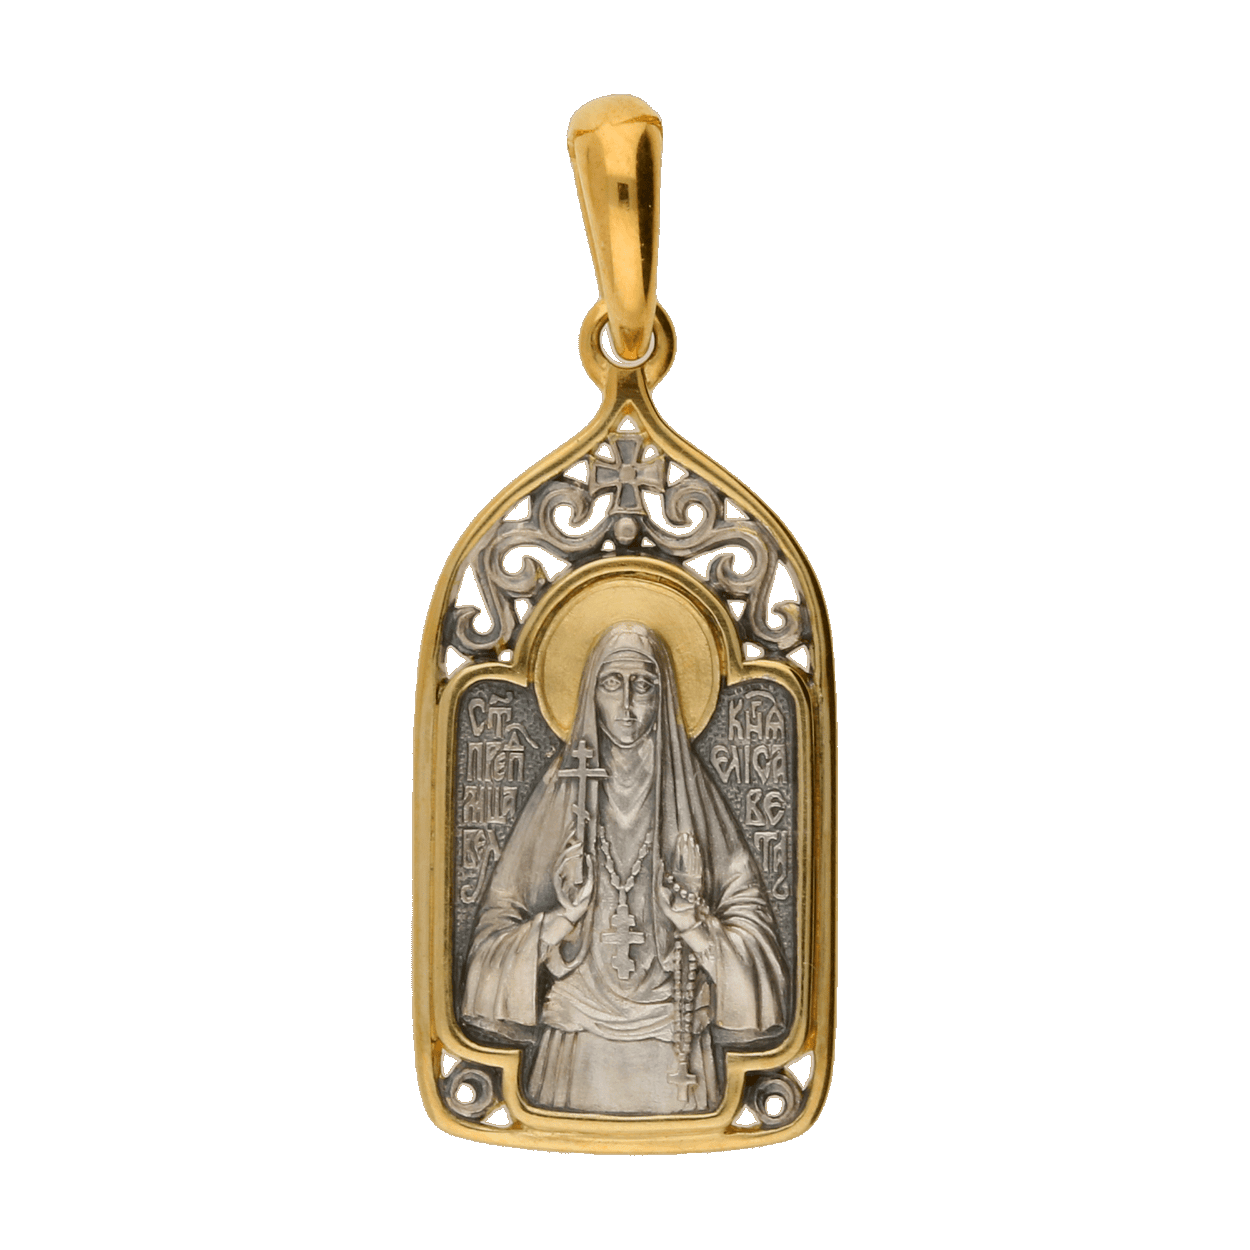 IS012_A-Russian-Orthodox-Icon-silver-medal-pendant-SAINT-ELISABETH-THE-NEW-MARTYR-Master-Jeweler-Fedorov-min (1)-min